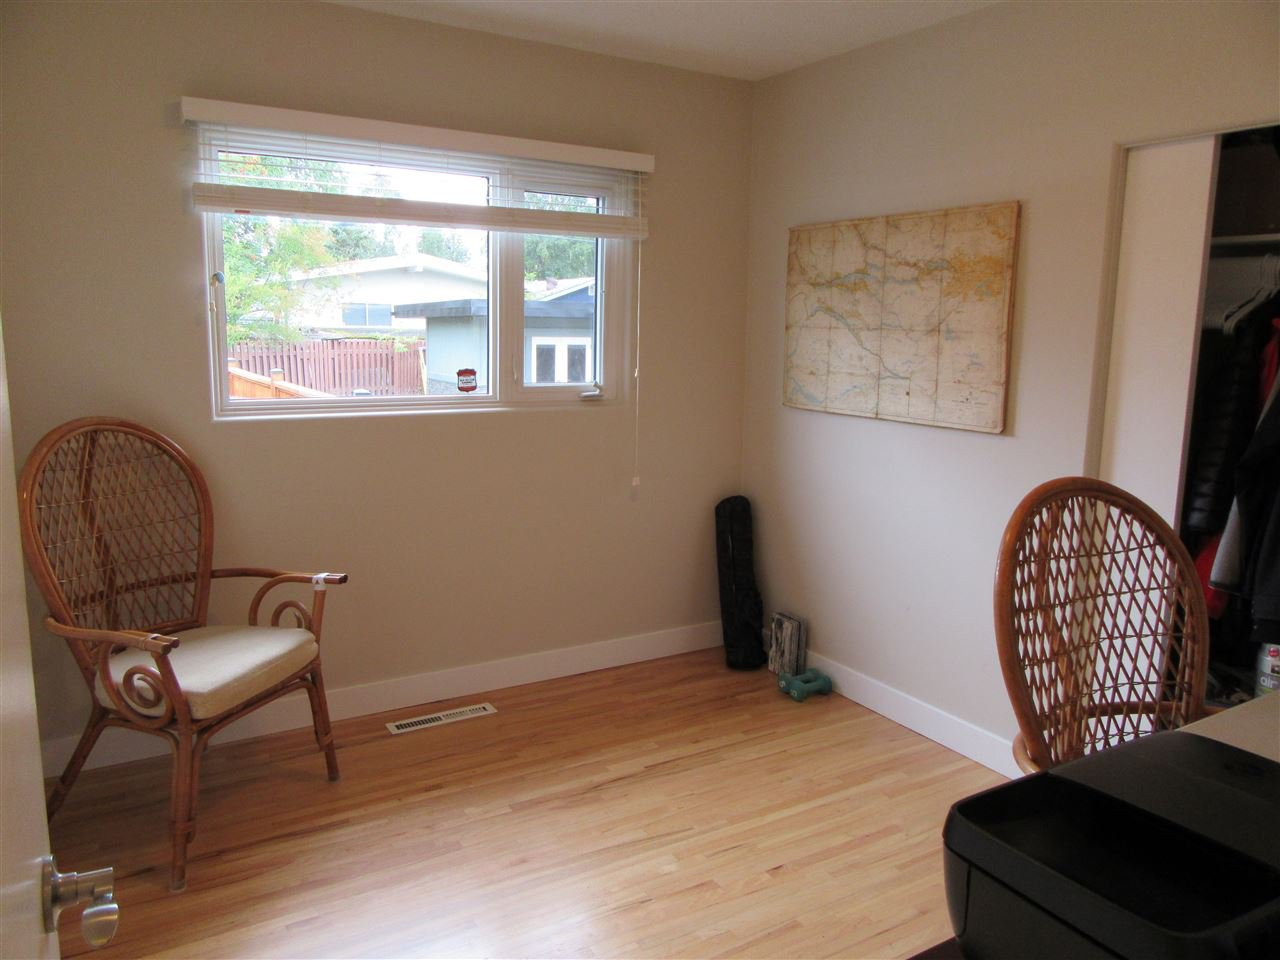 """Photo 33: Photos: 121 FREEMAN Street in Prince George: Nechako View House for sale in """"NECHAKO"""" (PG City Central (Zone 72))  : MLS®# R2493268"""